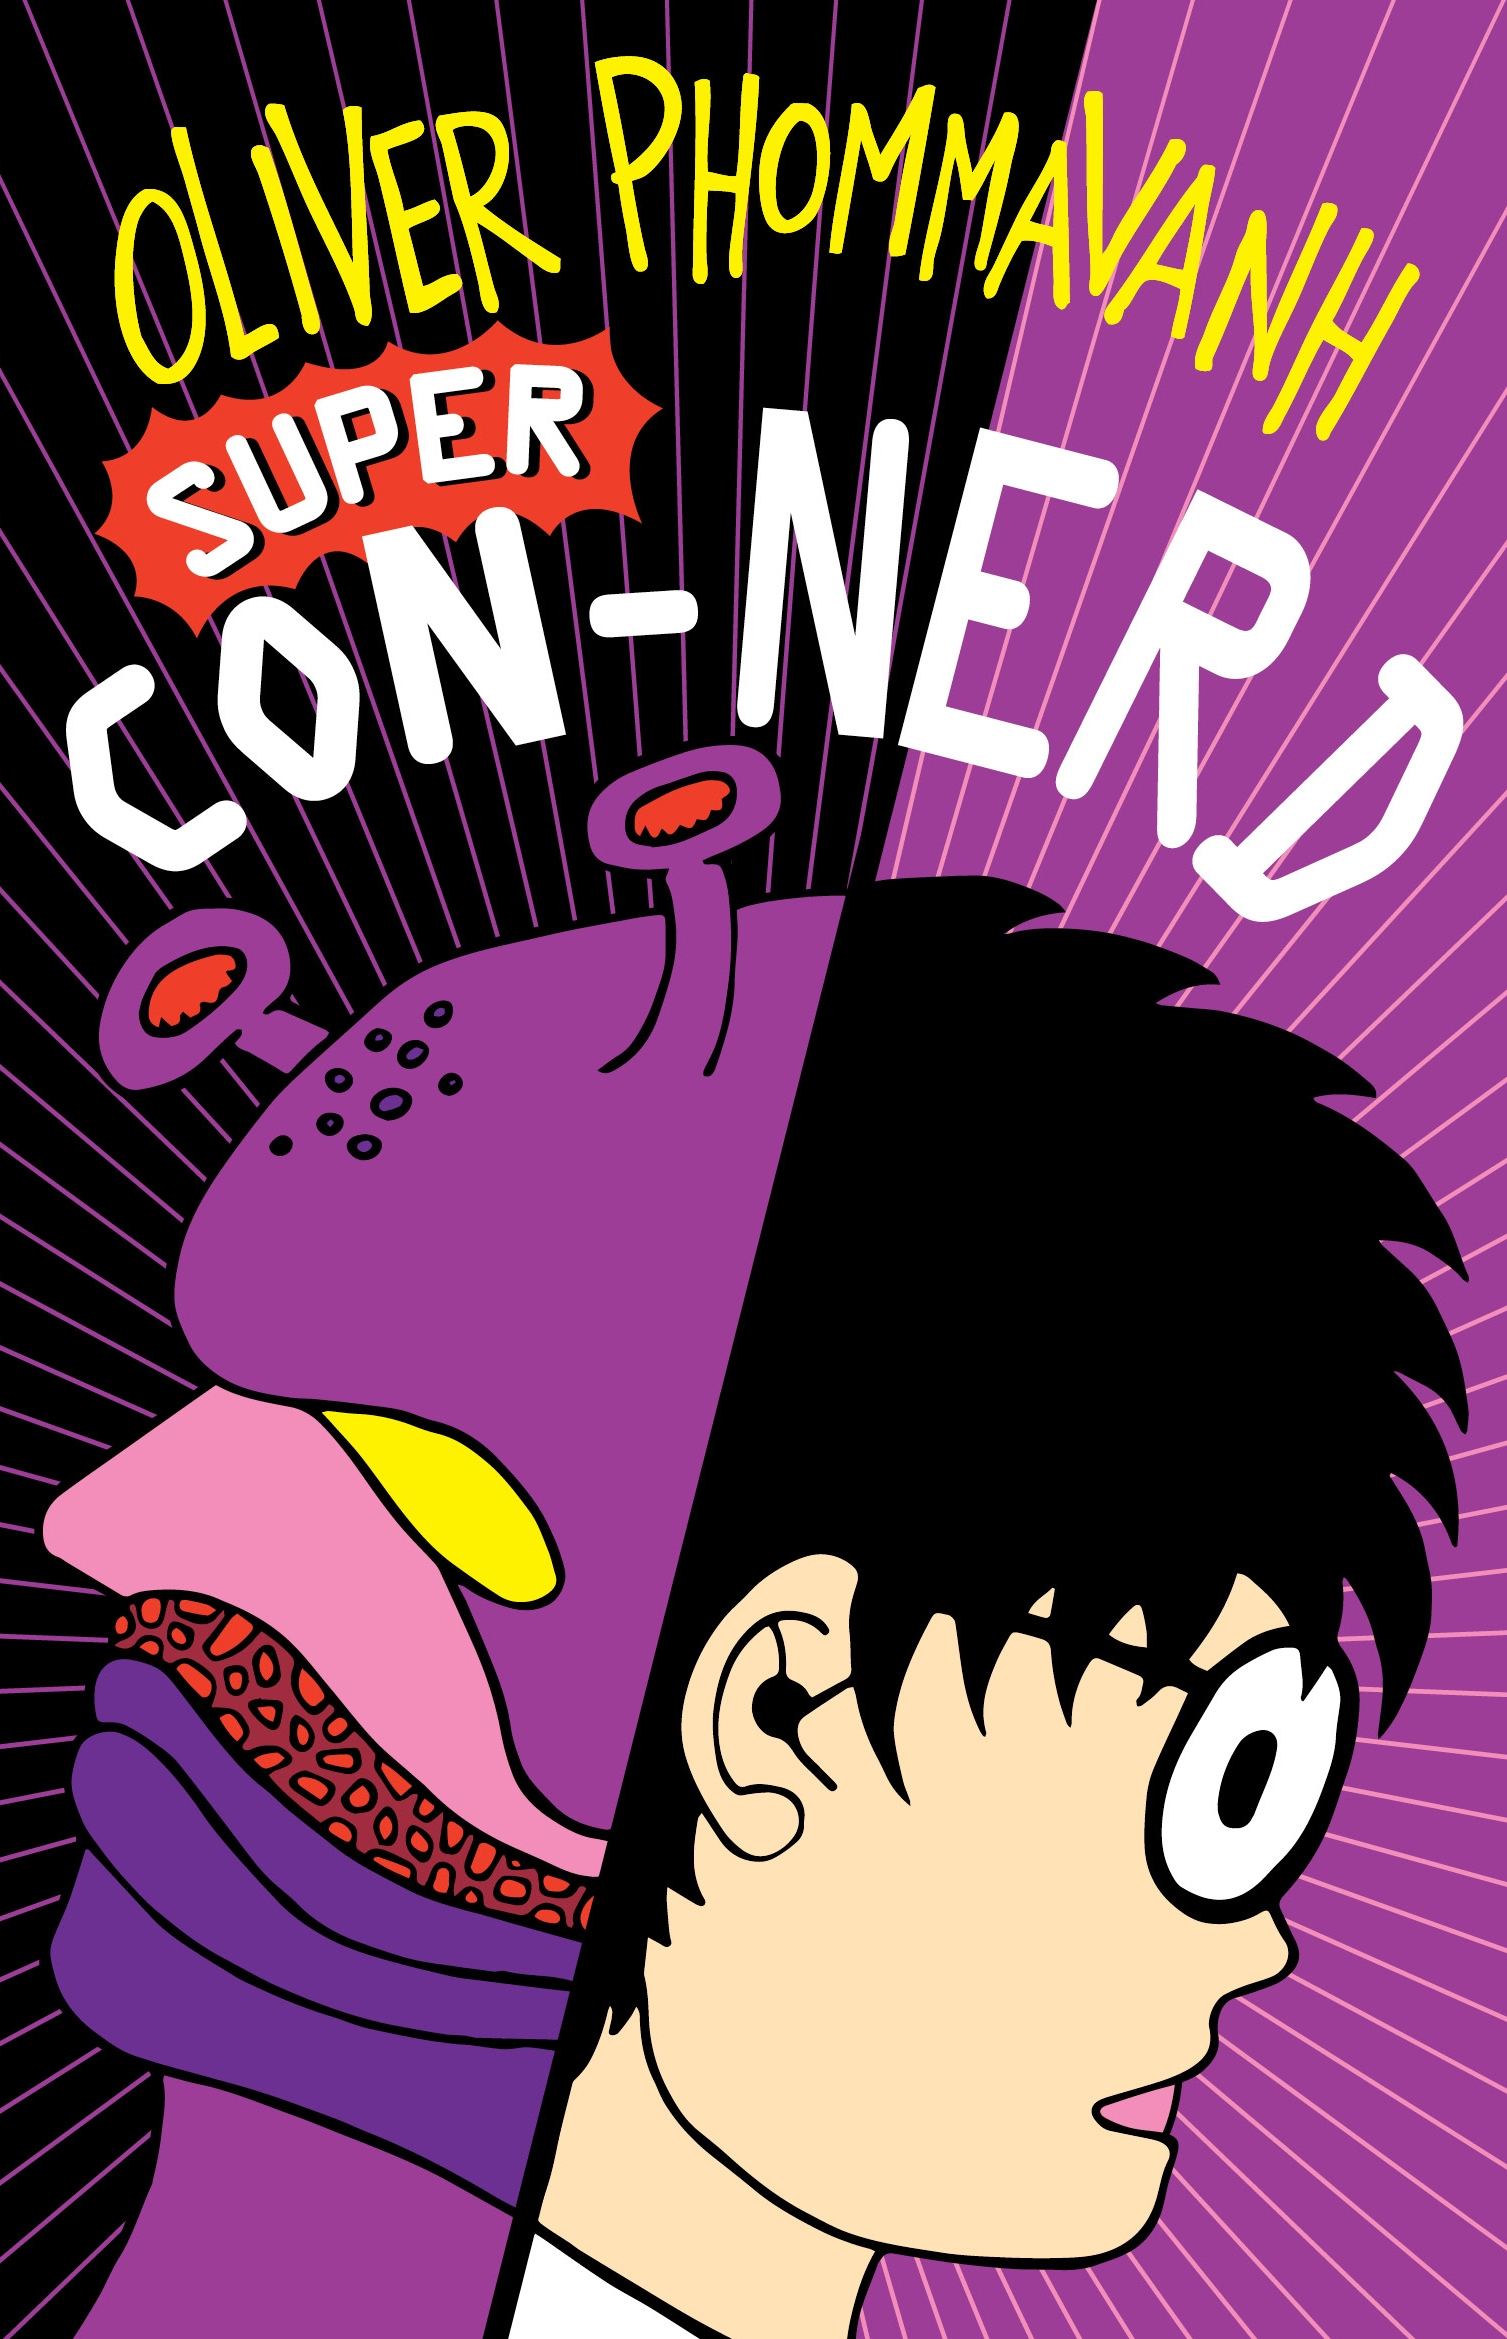 Super Con-Nerd by Oliver Phommavanh, ISBN: 9780143306535